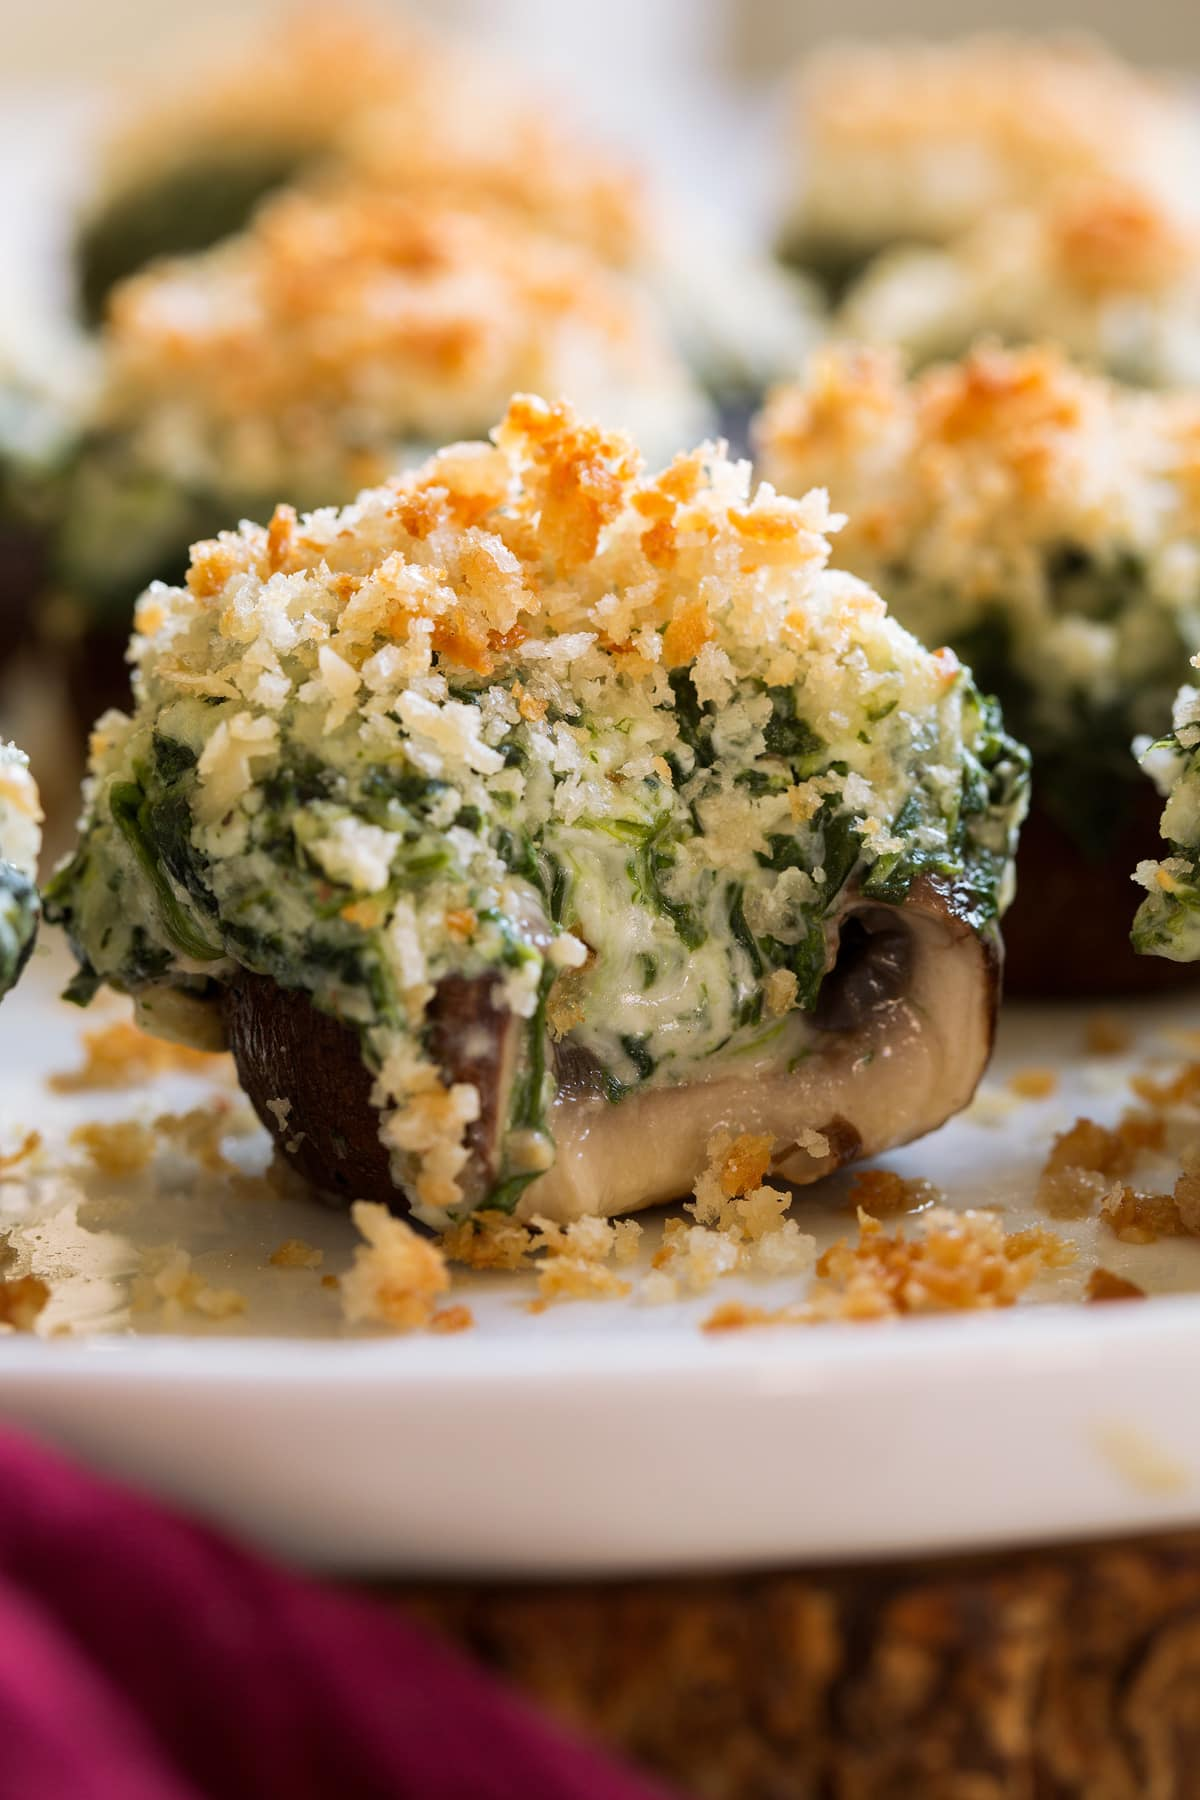 Stuffed mushrooms with a bite taken out to show cheesy filling.